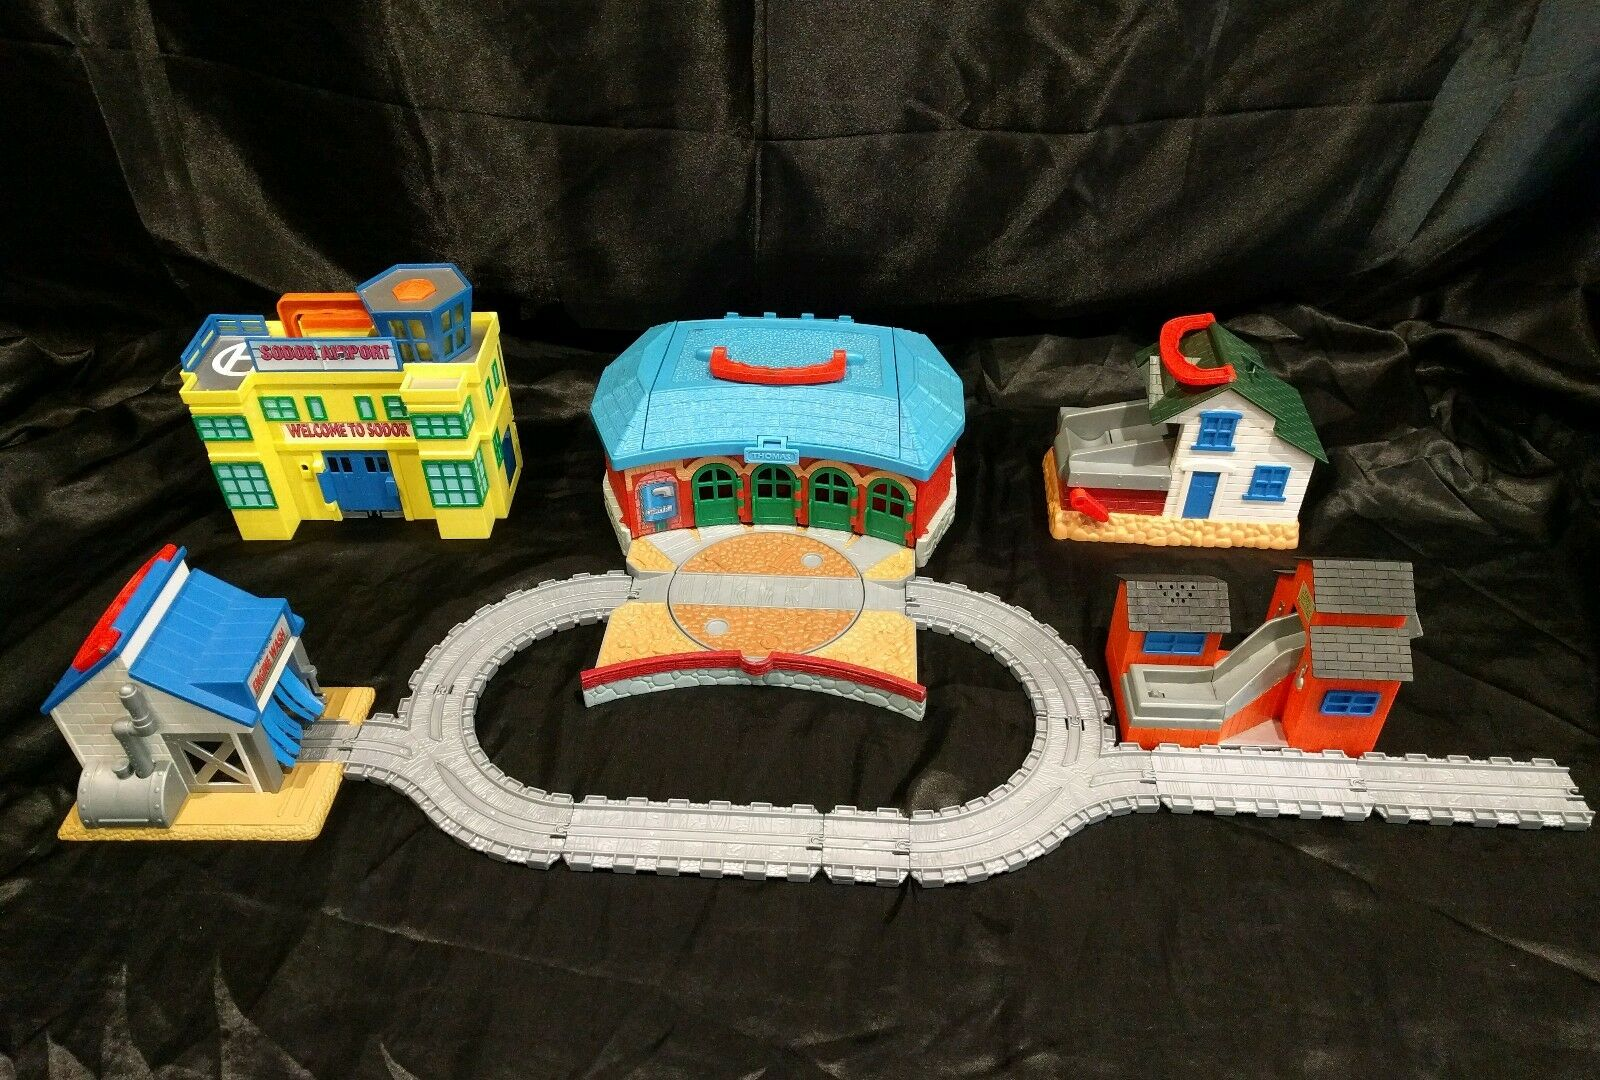 Thomas take n play tidmouth sheds sheds sheds bundle b63f37